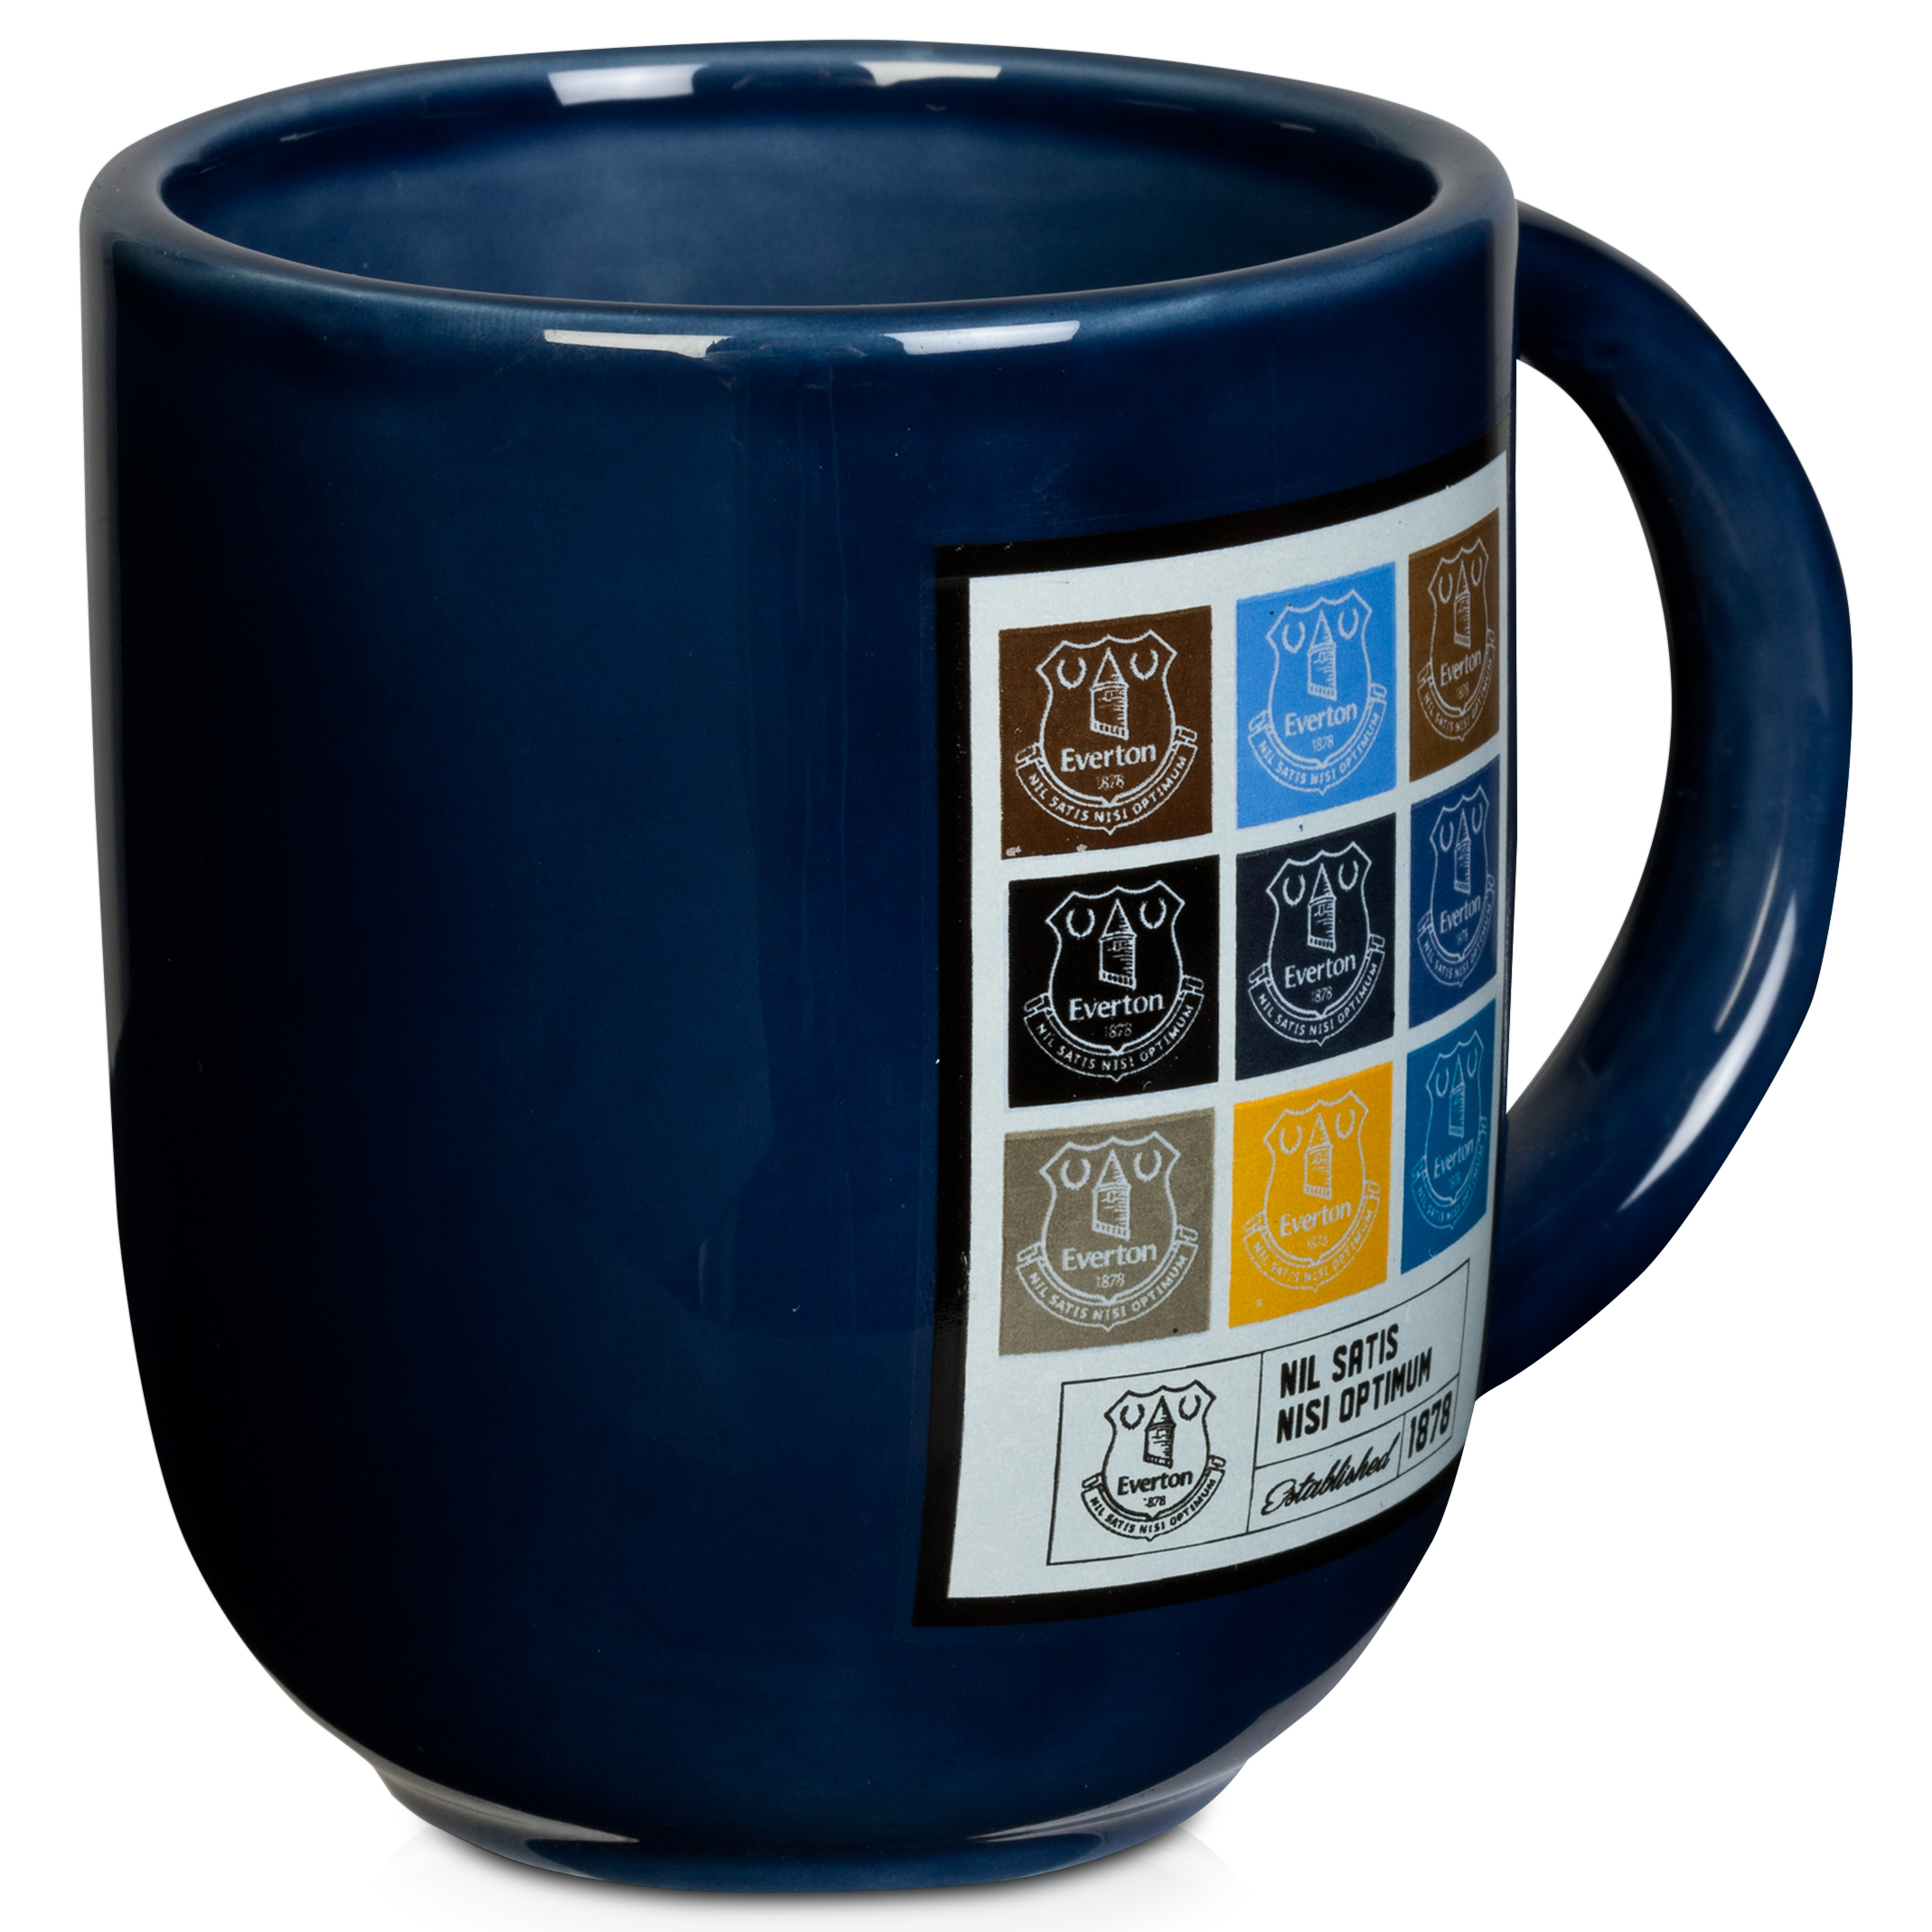 Everton Retro Mug in Gift Box